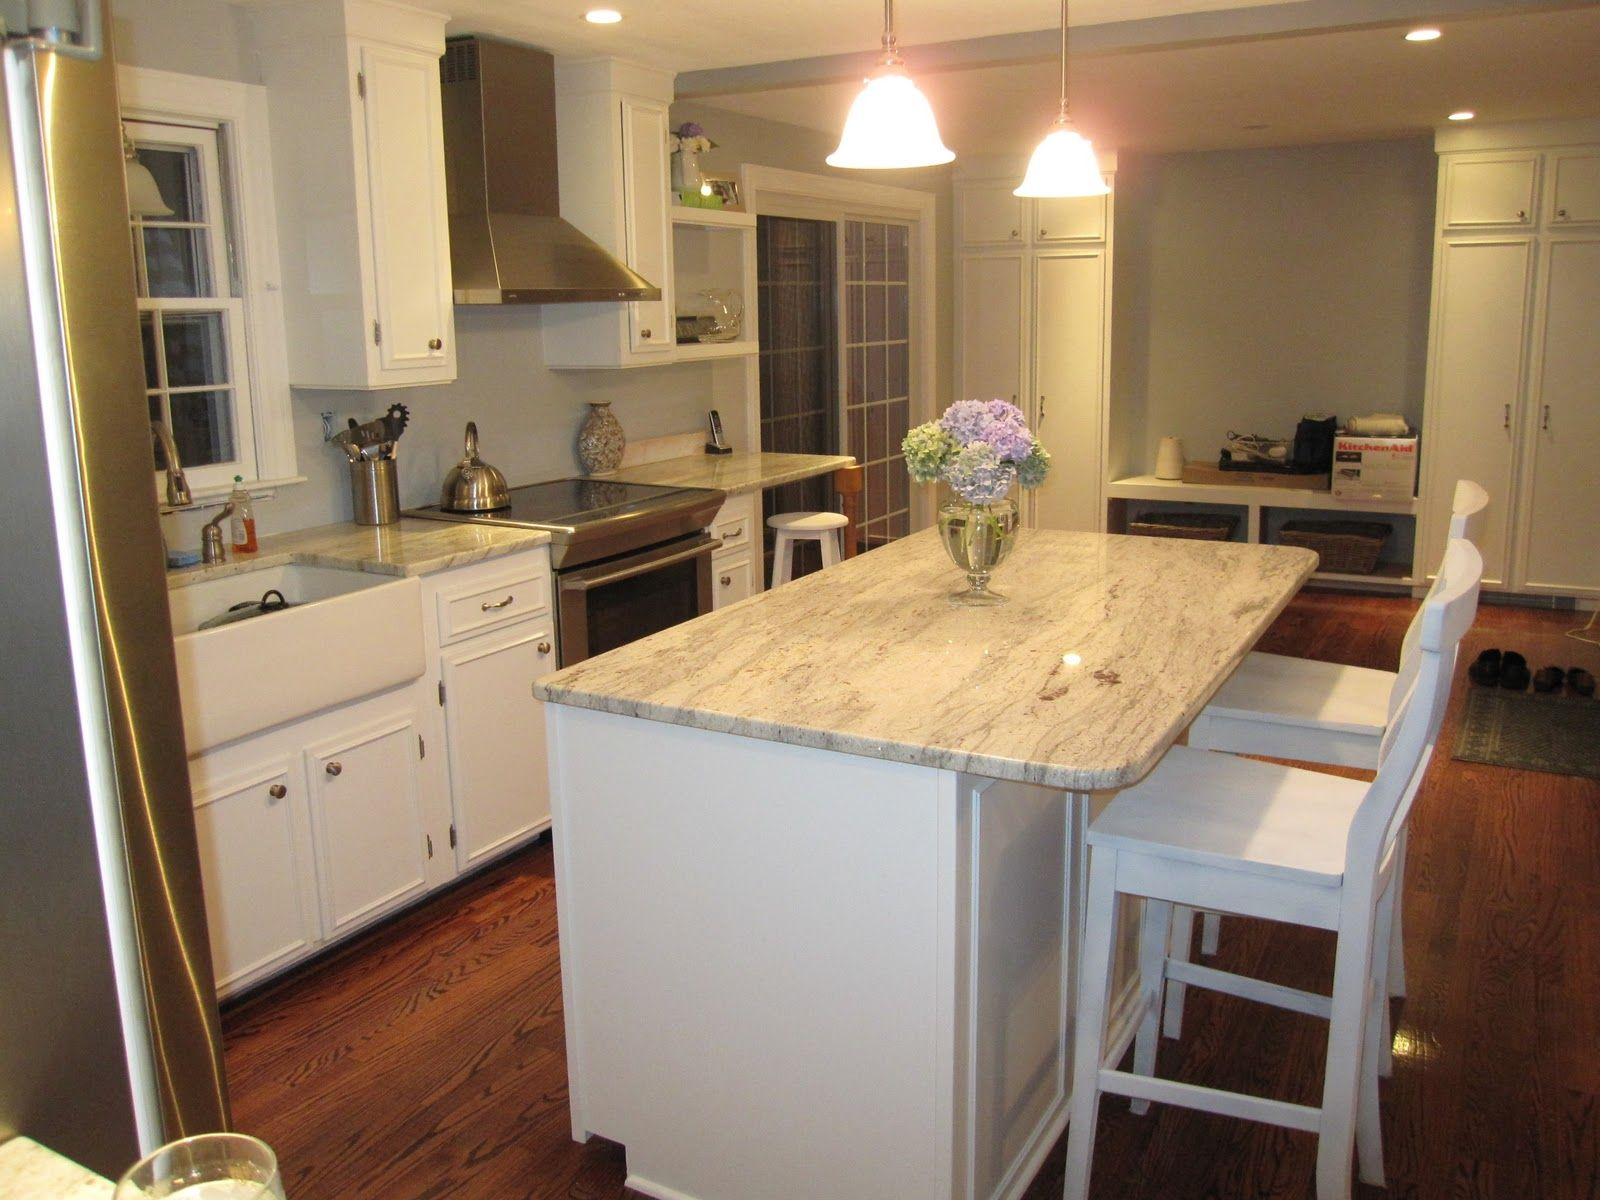 White cabinets with granite countertops diy kitchen for Kitchen counter cabinet